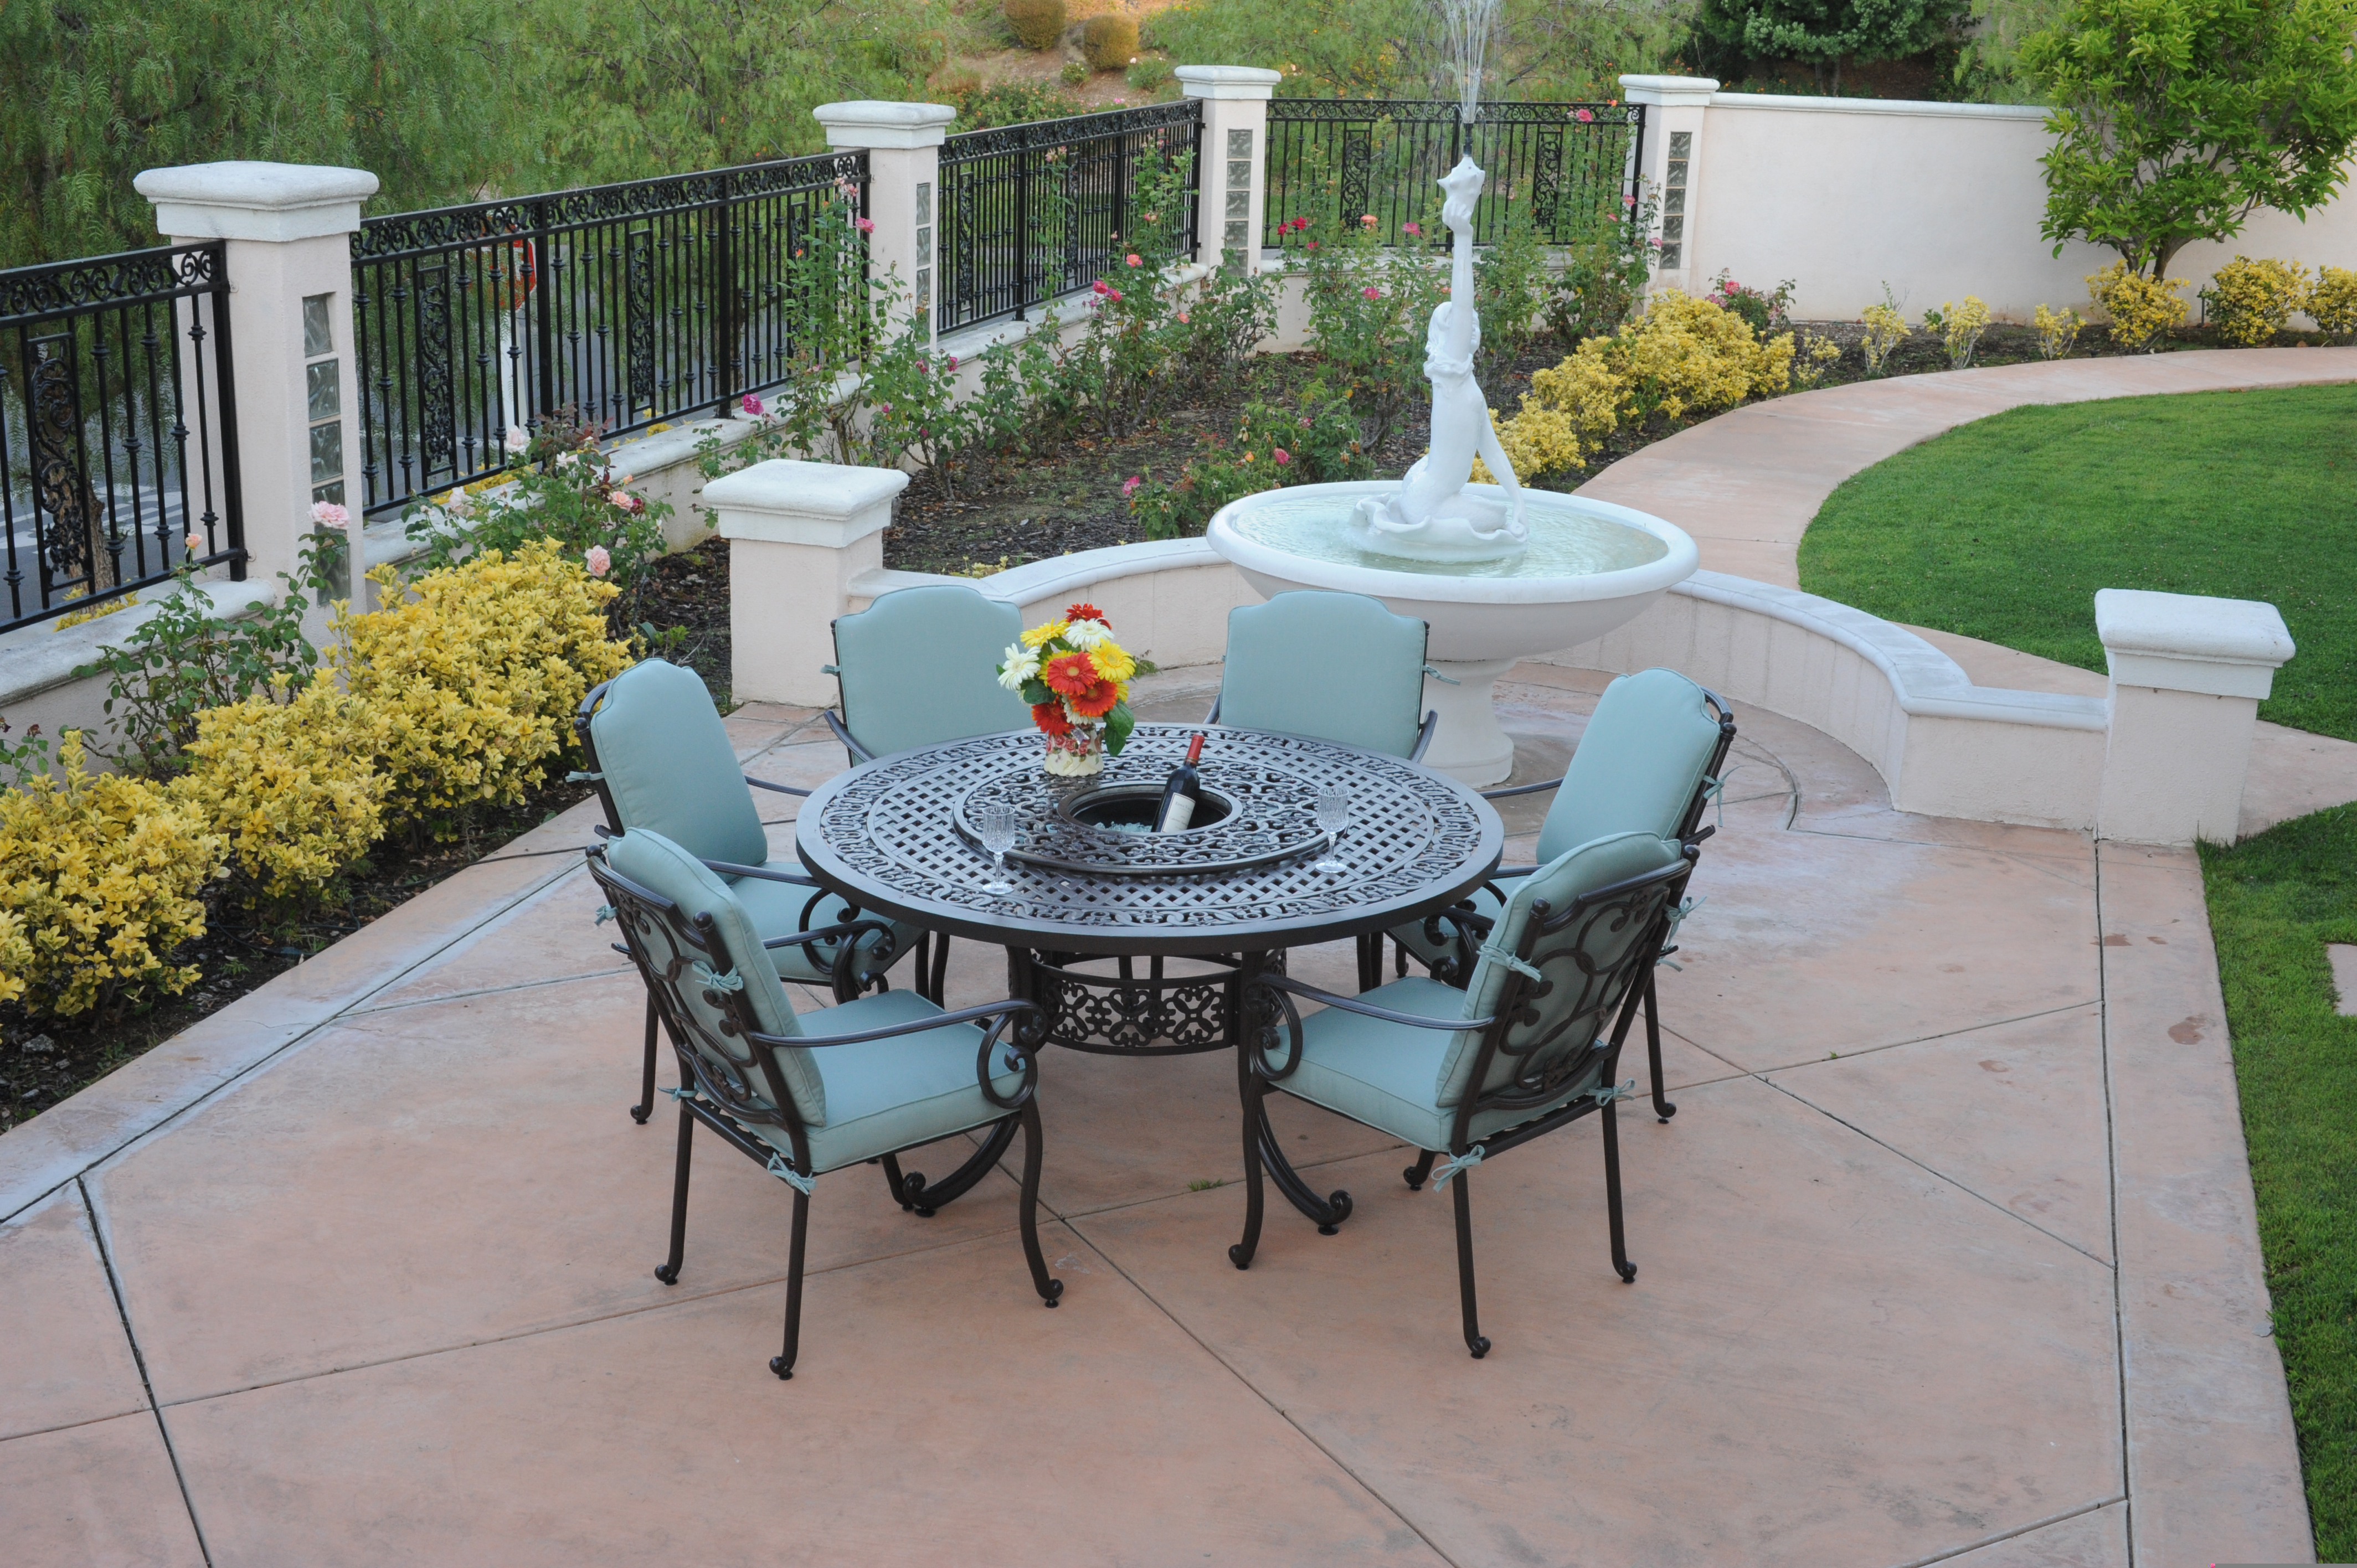 Patio & Hearth Blog from Patio and Hearth Products Report